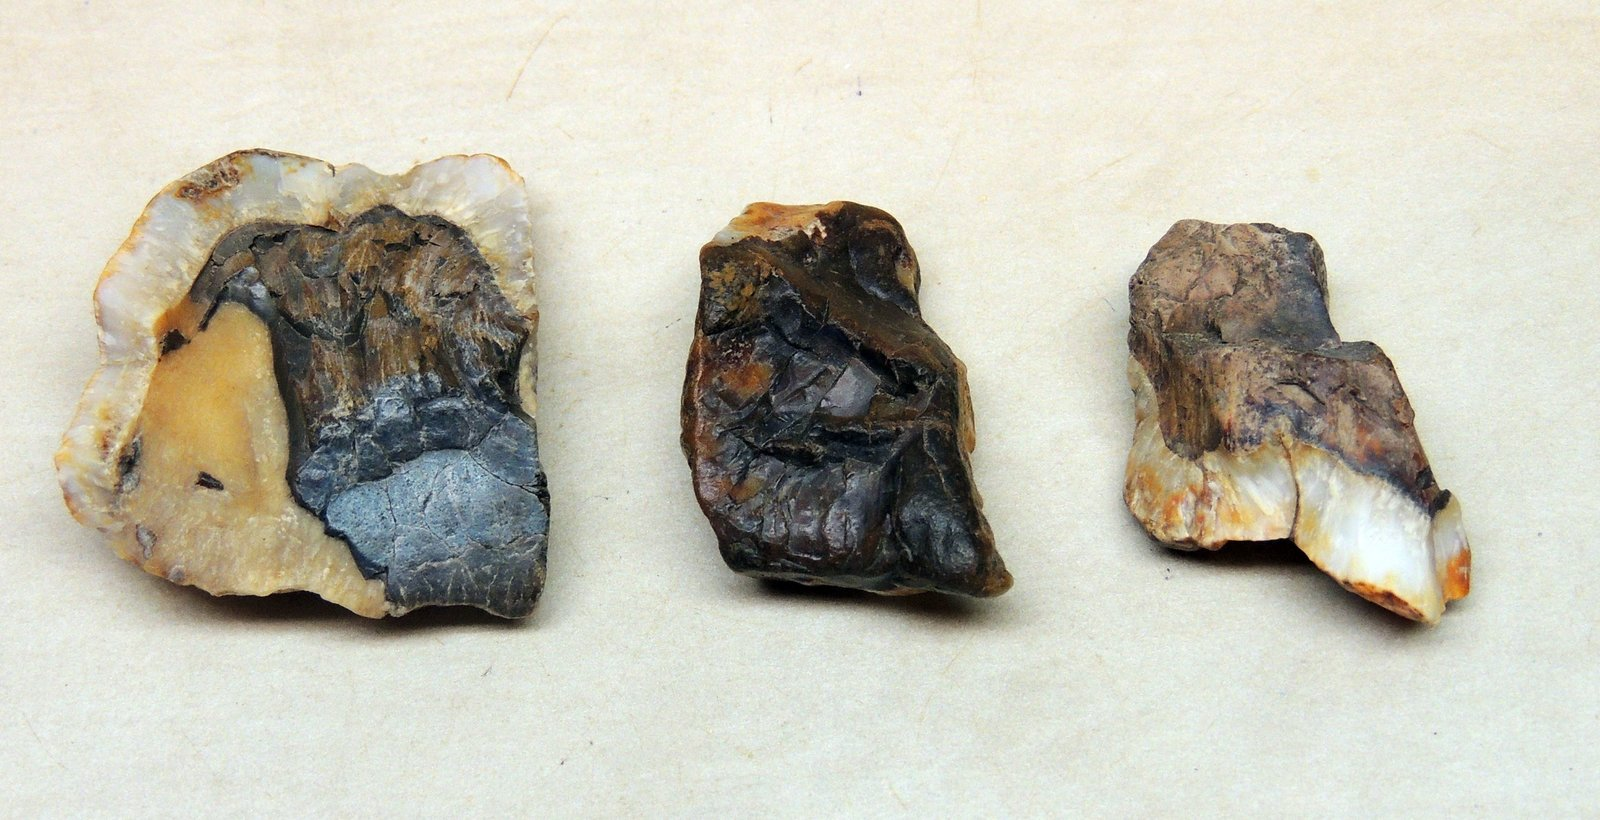 Mammoth tooth fragments